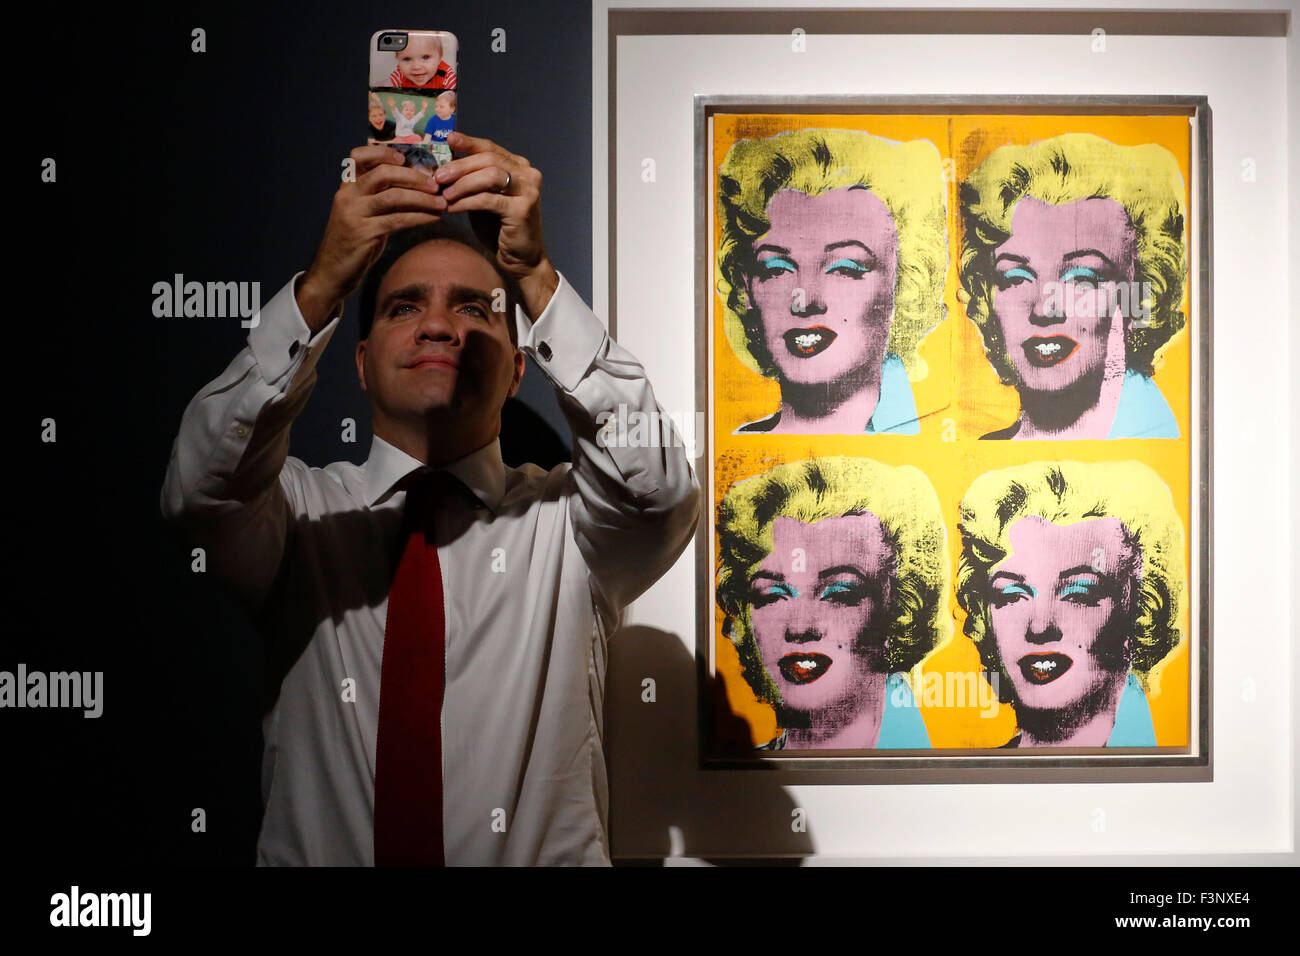 New york usa 11th nov 2015 telephone bidders stand in front of the - Francis Outred Chairman And Head Of Post War And Contemporary Art Emeri Poses